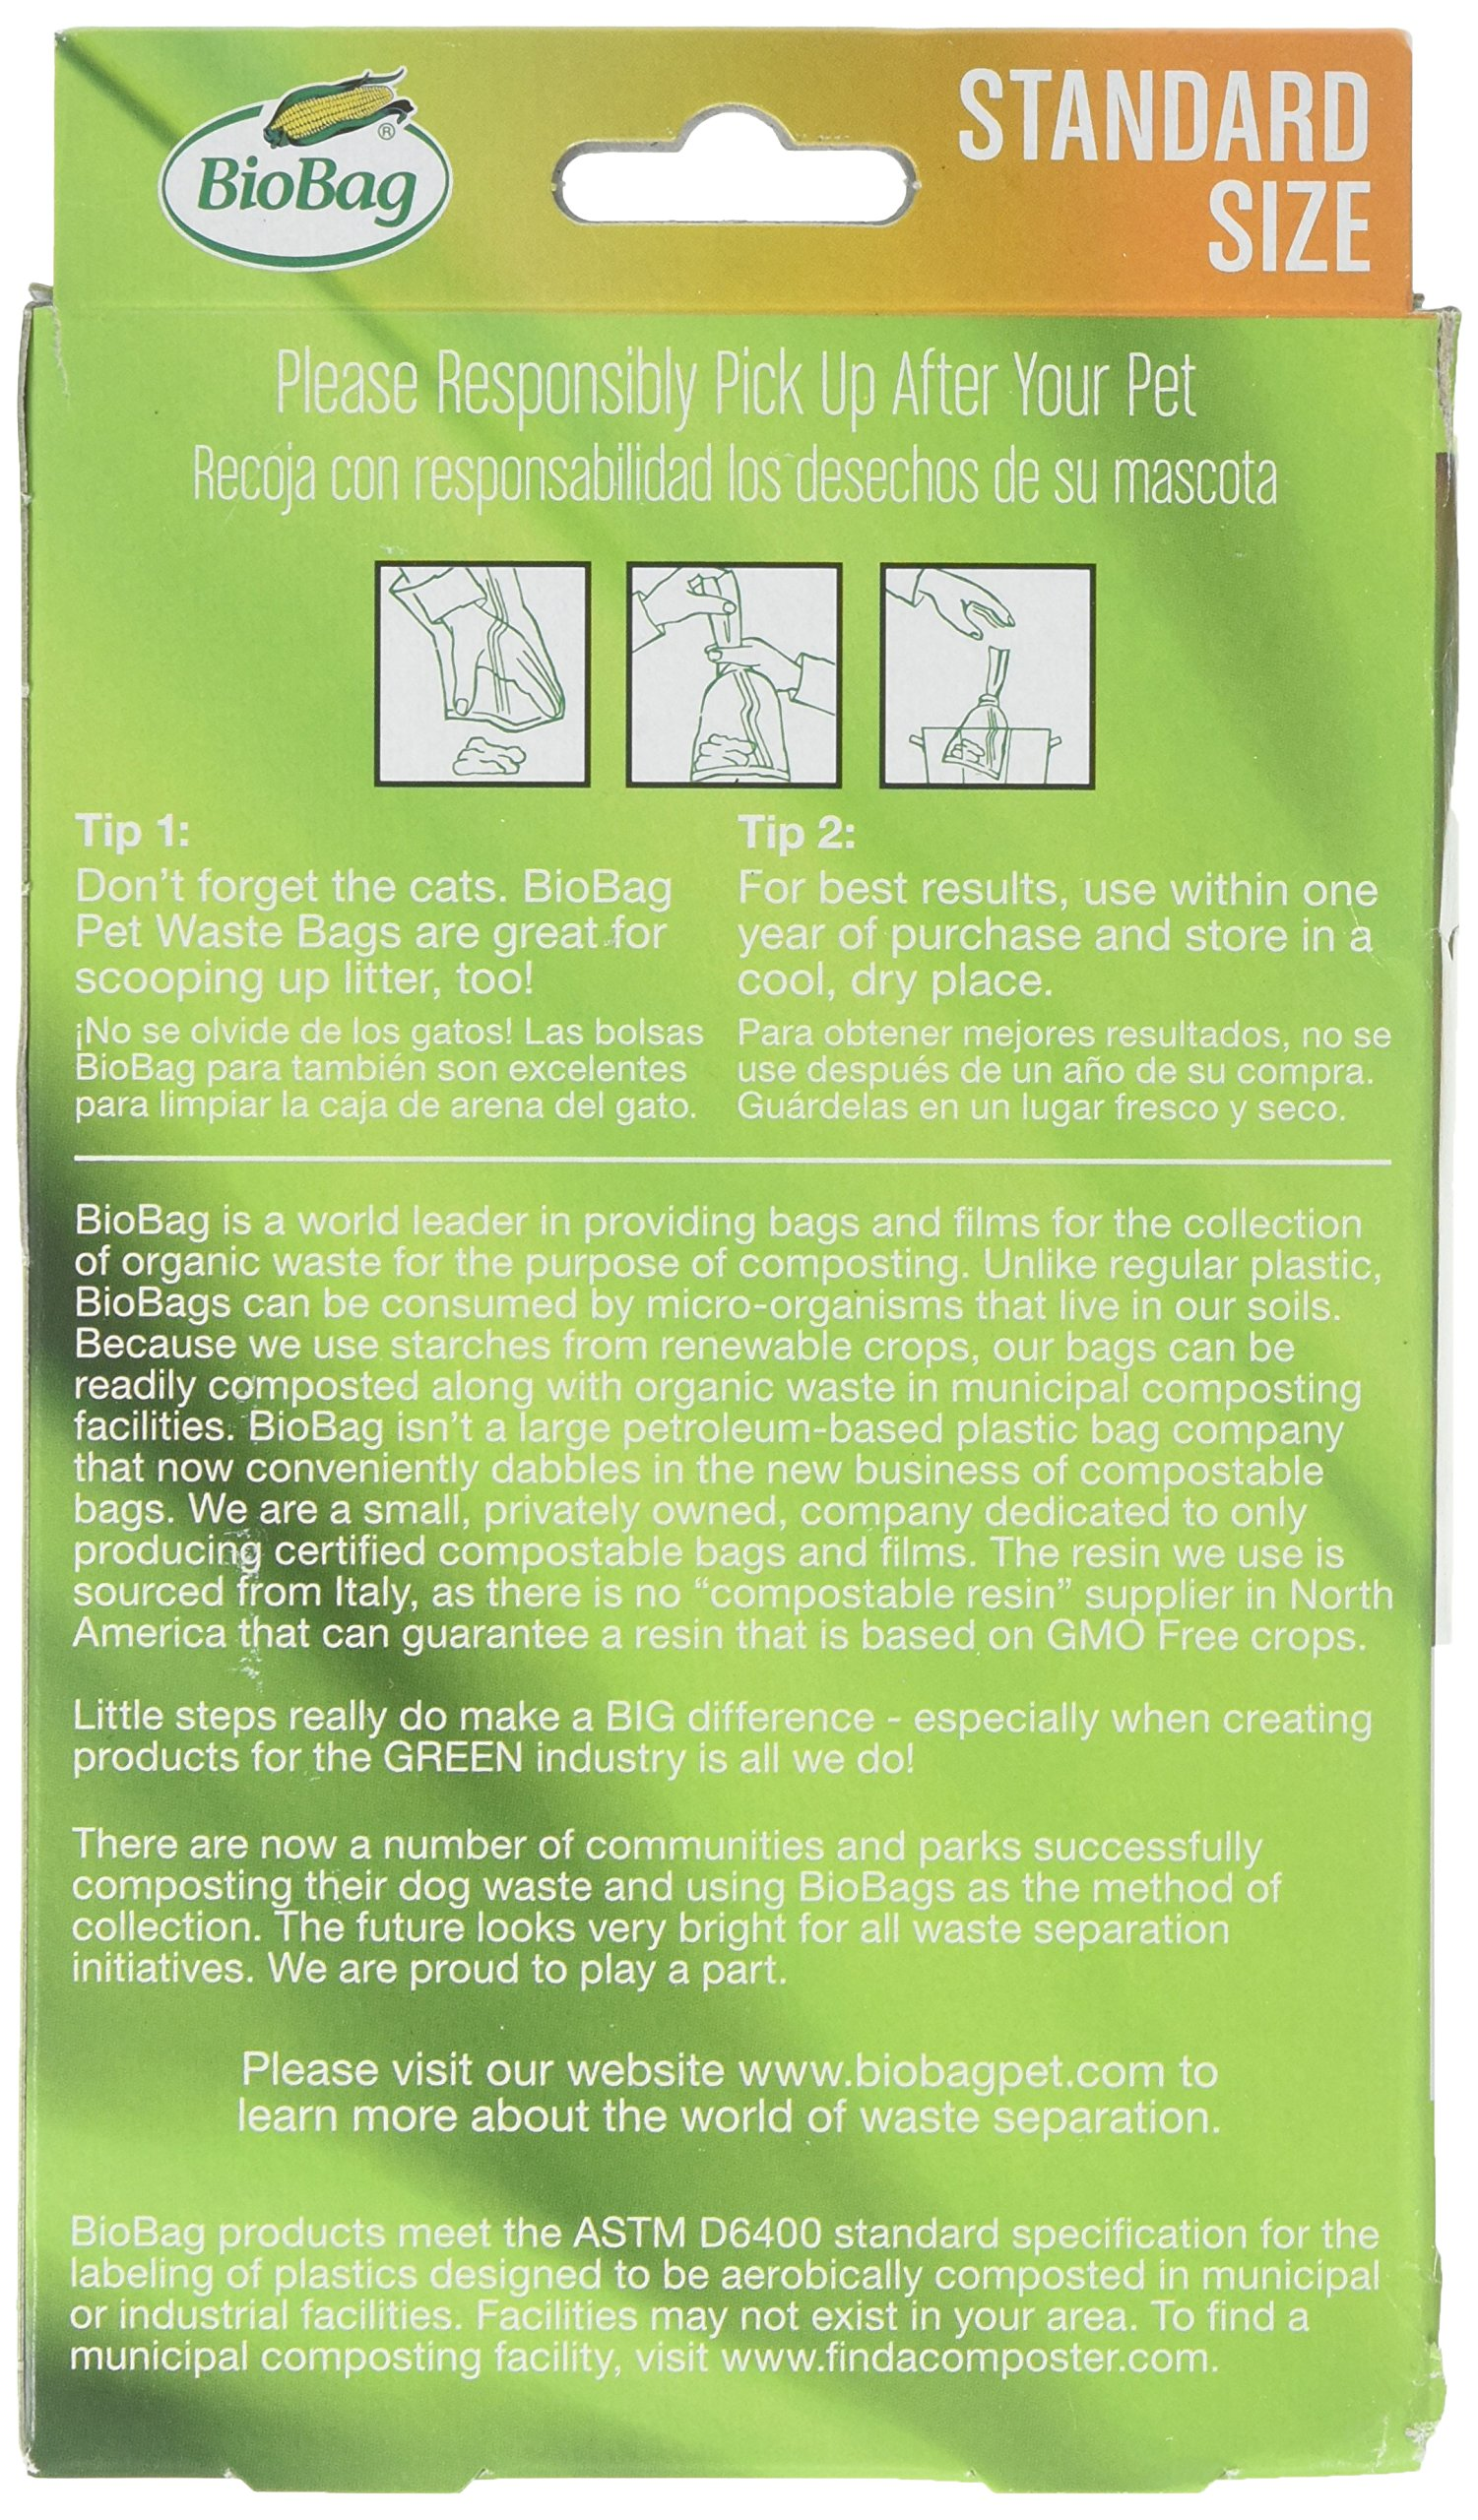 Bio Bag Premium Pet Waste Bags, Standard Size, 50 Count - Pack of 4 by BioBag (Image #2)